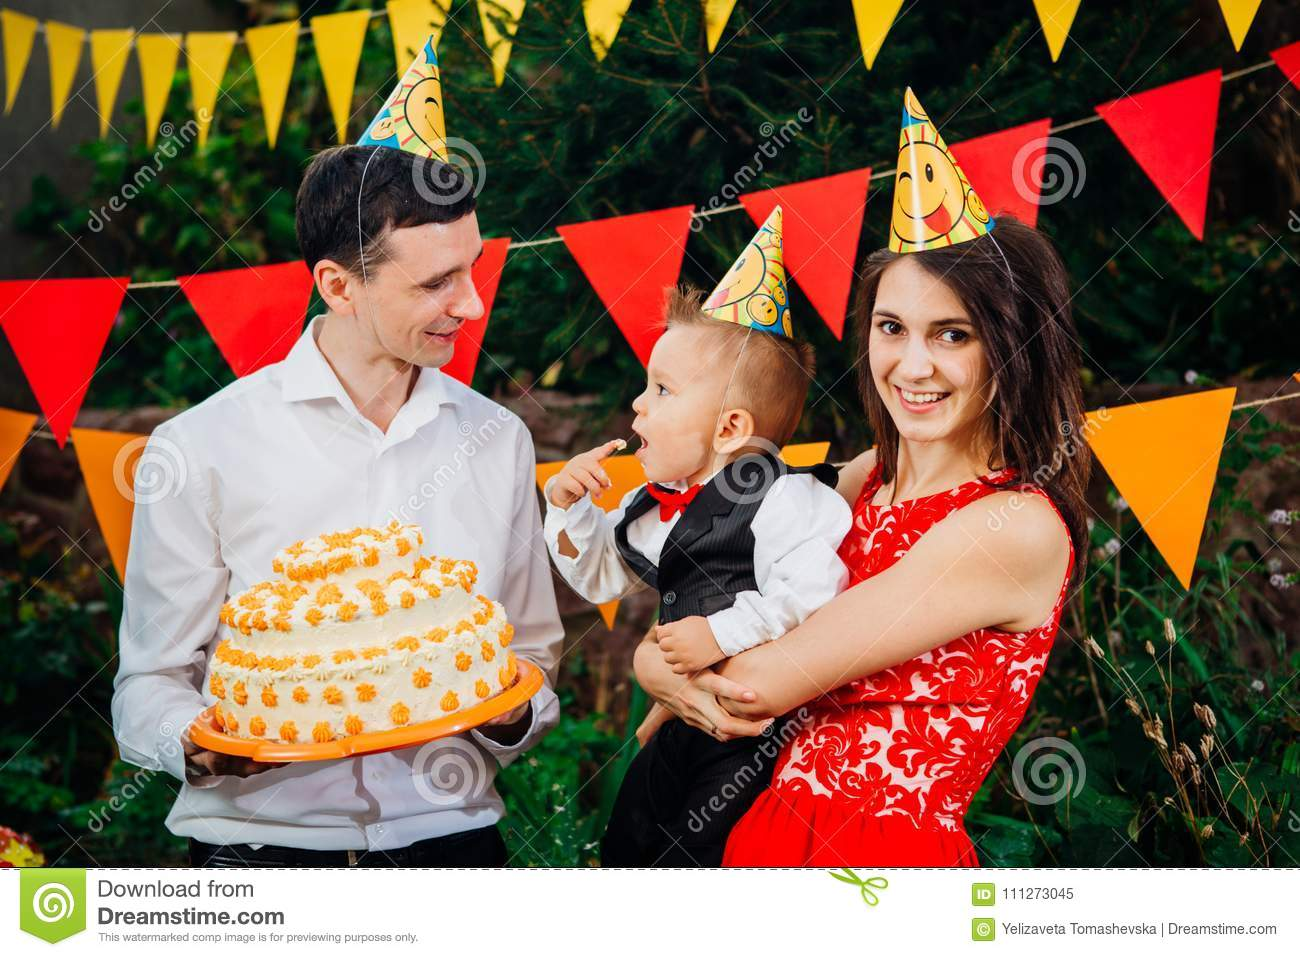 Subject Childrens Birthday Party Food And Sweets A Young Family Celebrates One Year Of Son Dad Is Holding Big Cake Mom Baby In Her Arms